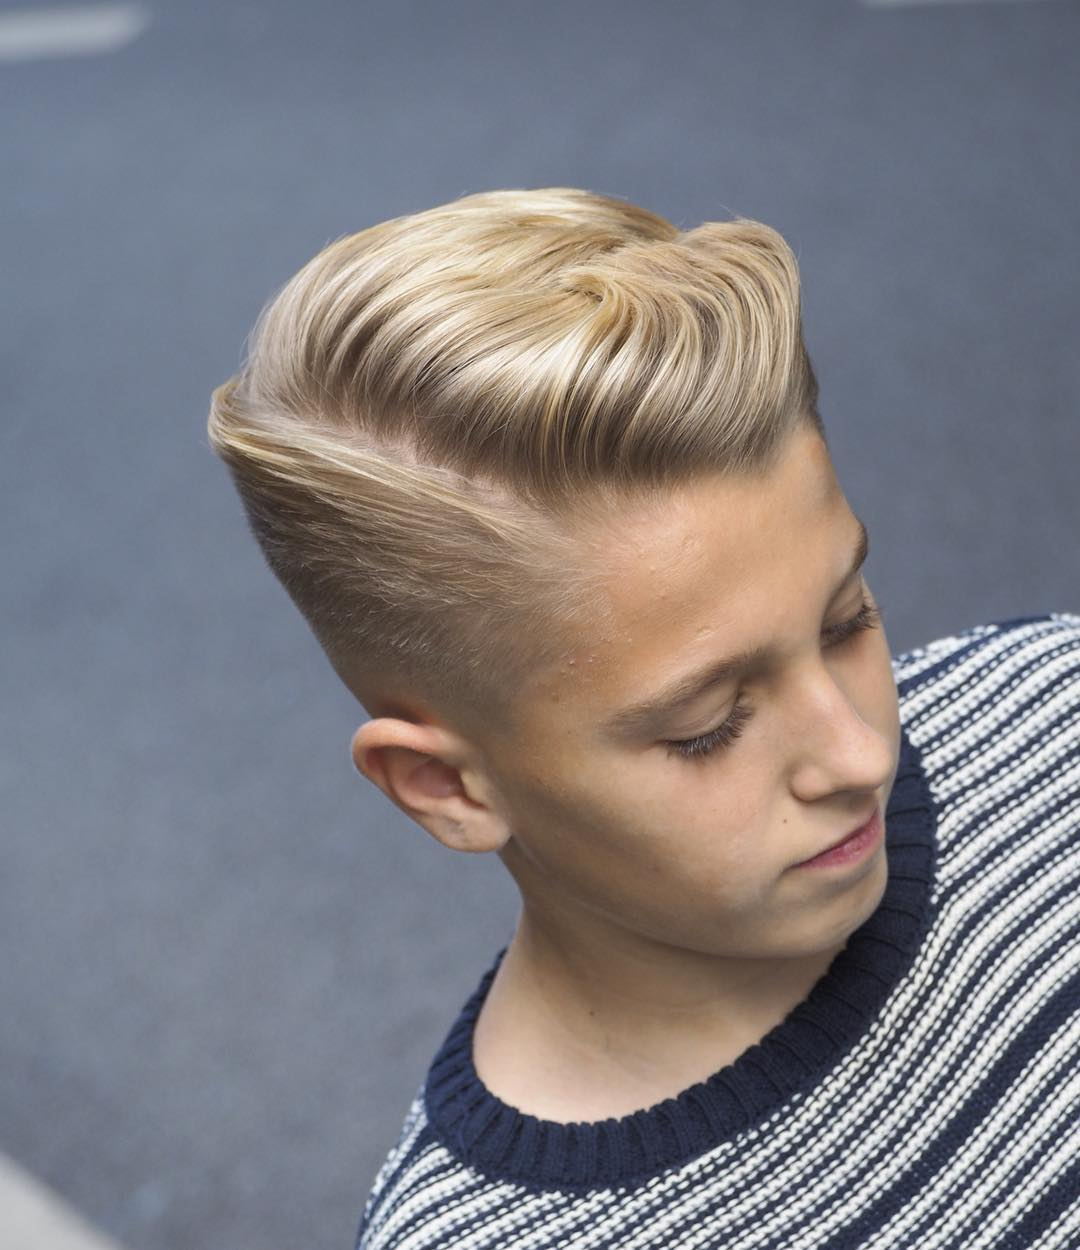 alan_beak side part fade best hairstyle for men the gentleman haircut